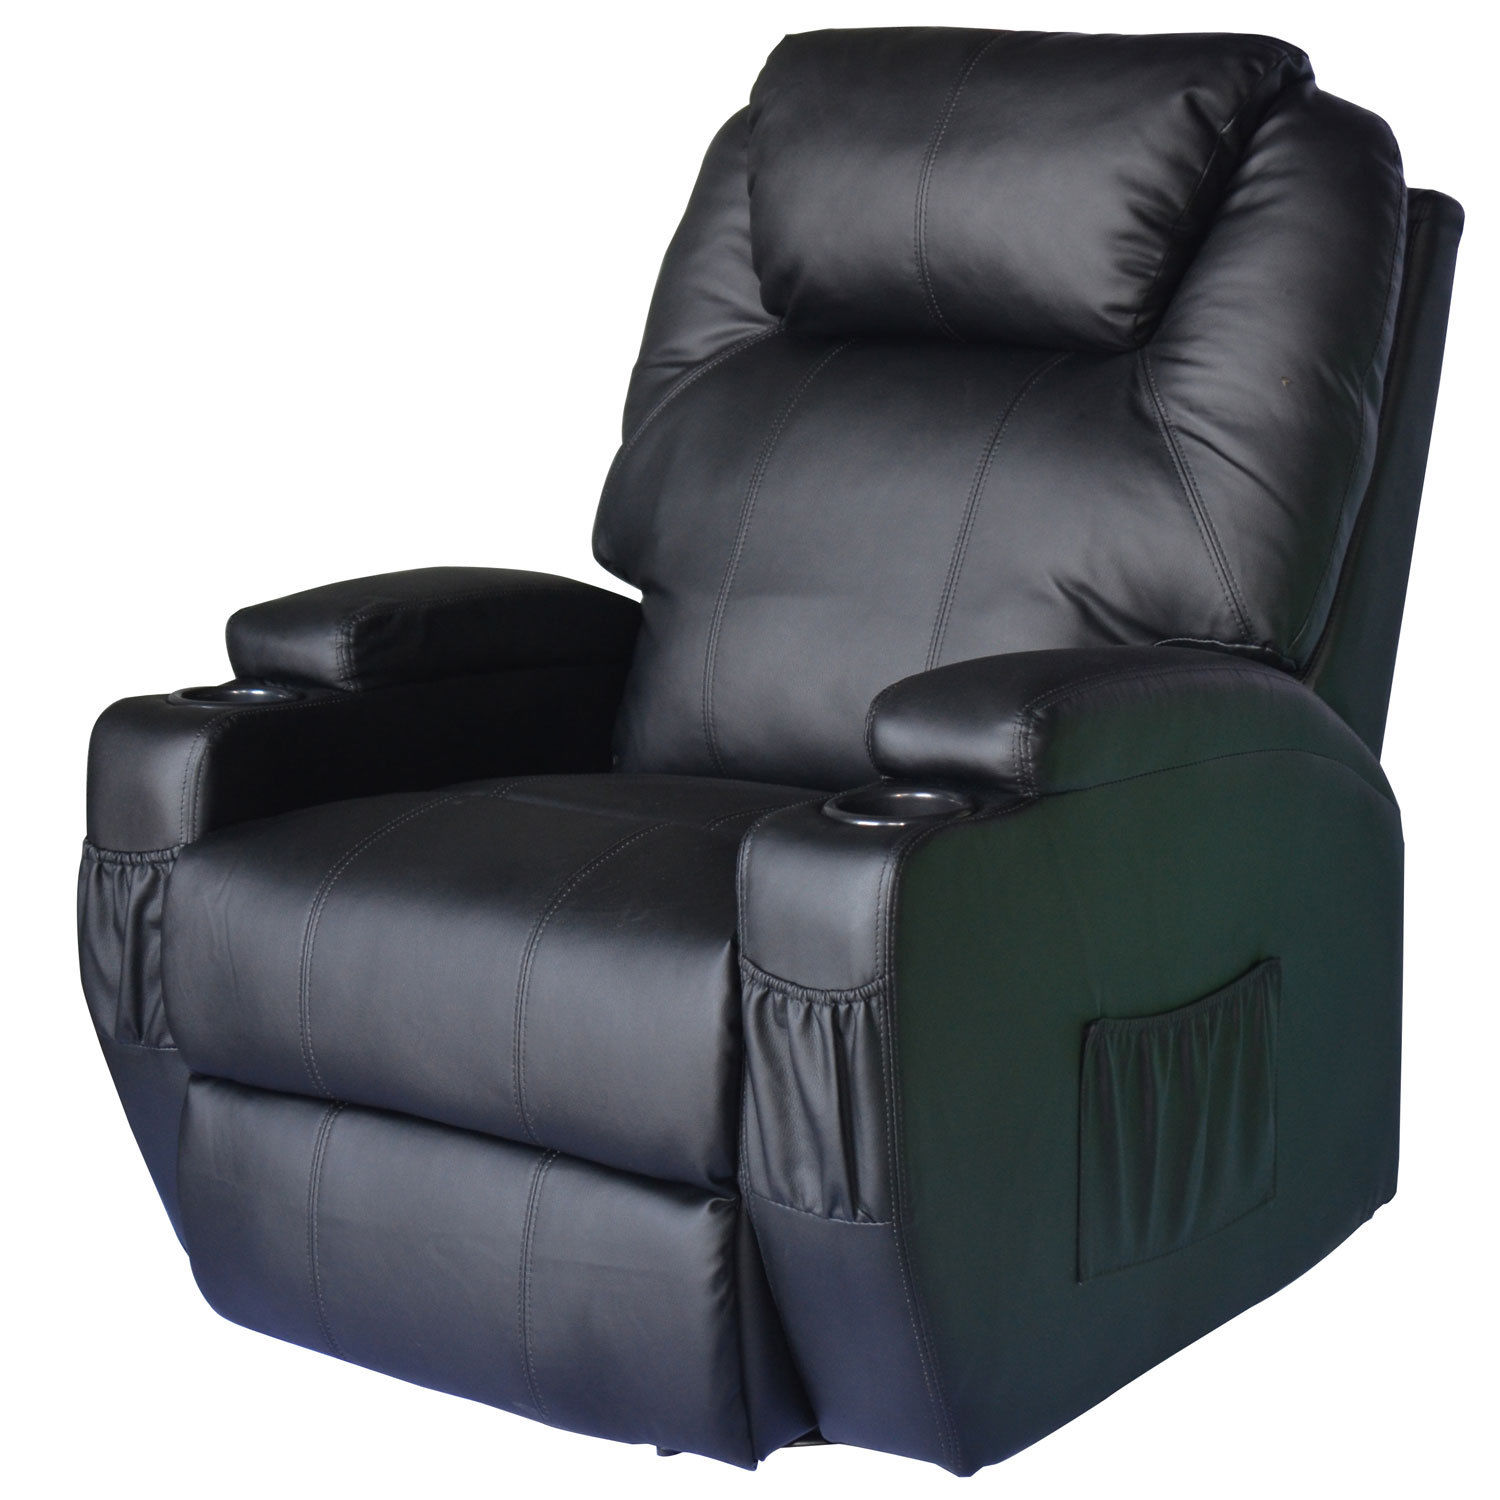 Massage Sofa Massage Recliner Sofa Leather Vibrating Heated Chair